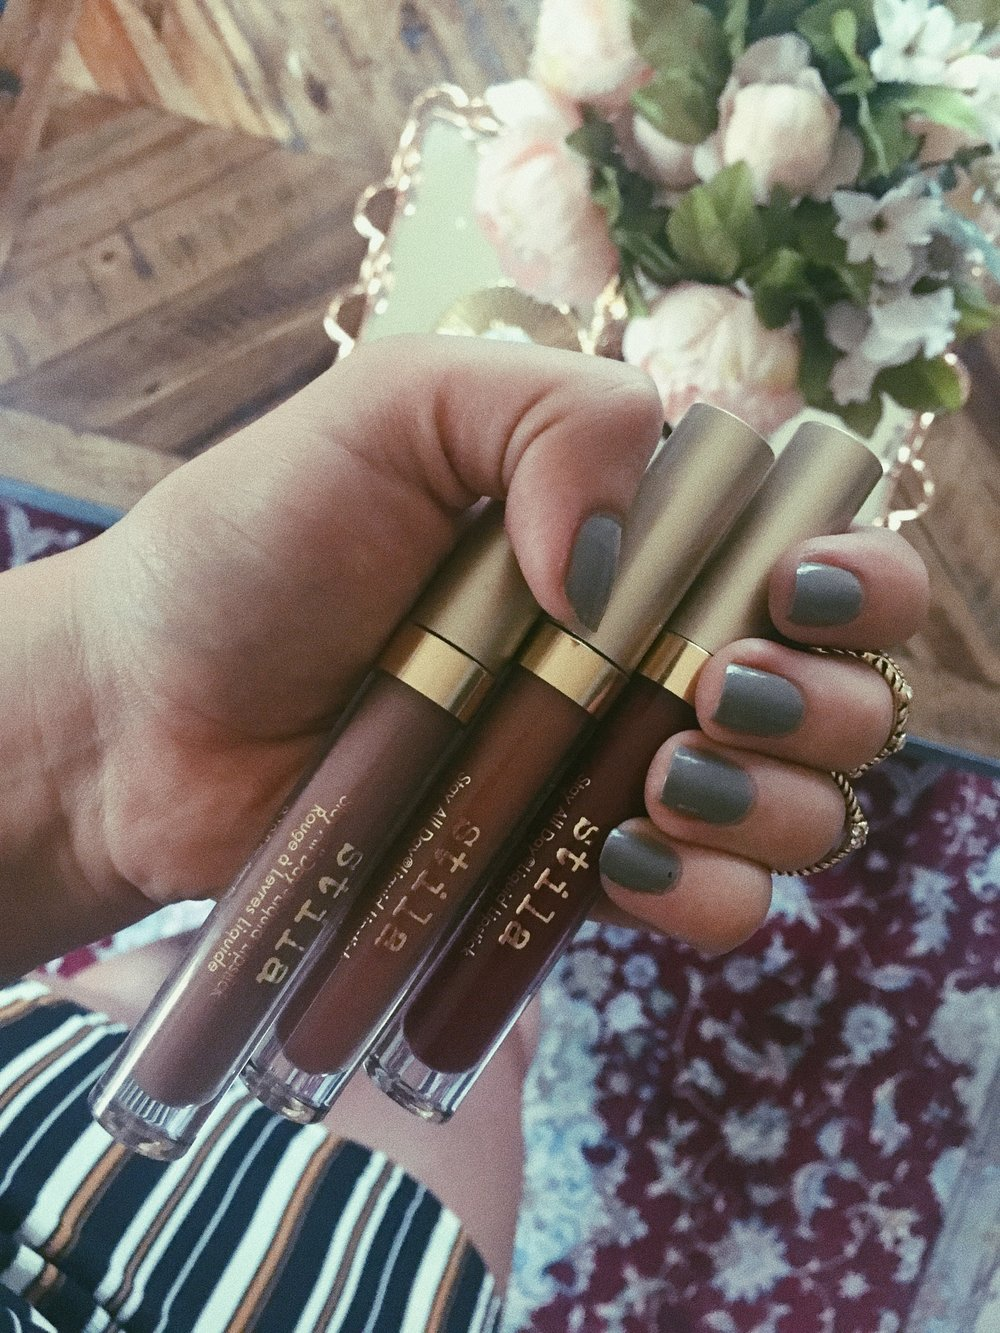 The Stila Stay All Day Liquid Lipsticks in Biscotti, Dolce and Rubino (told you I'm obsessed and collect them)